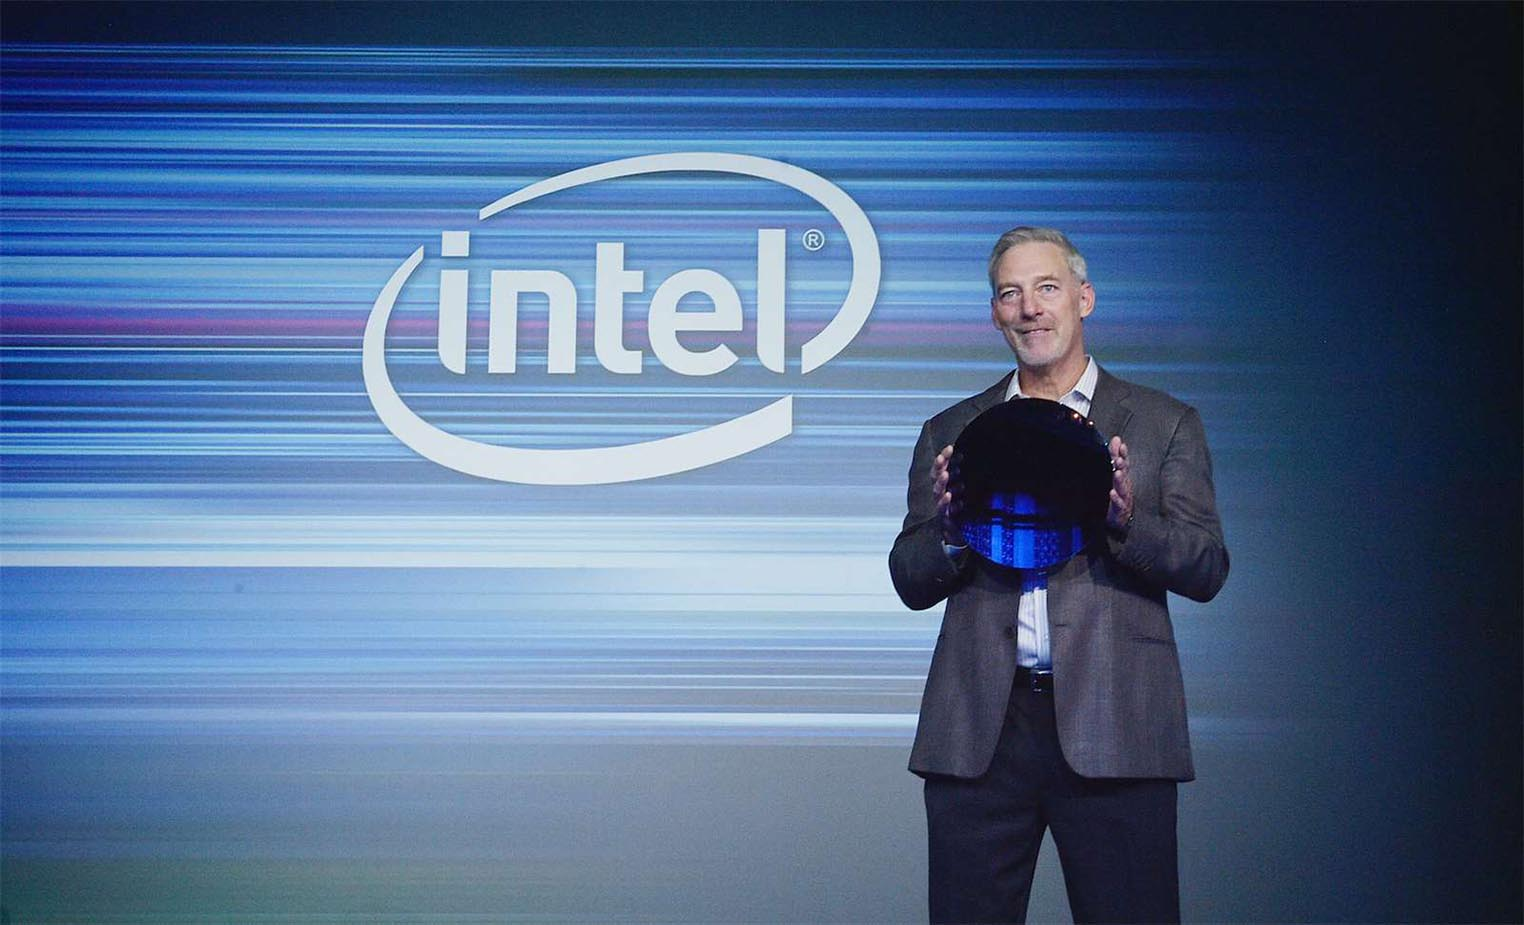 Intel Cannon Lake wafer